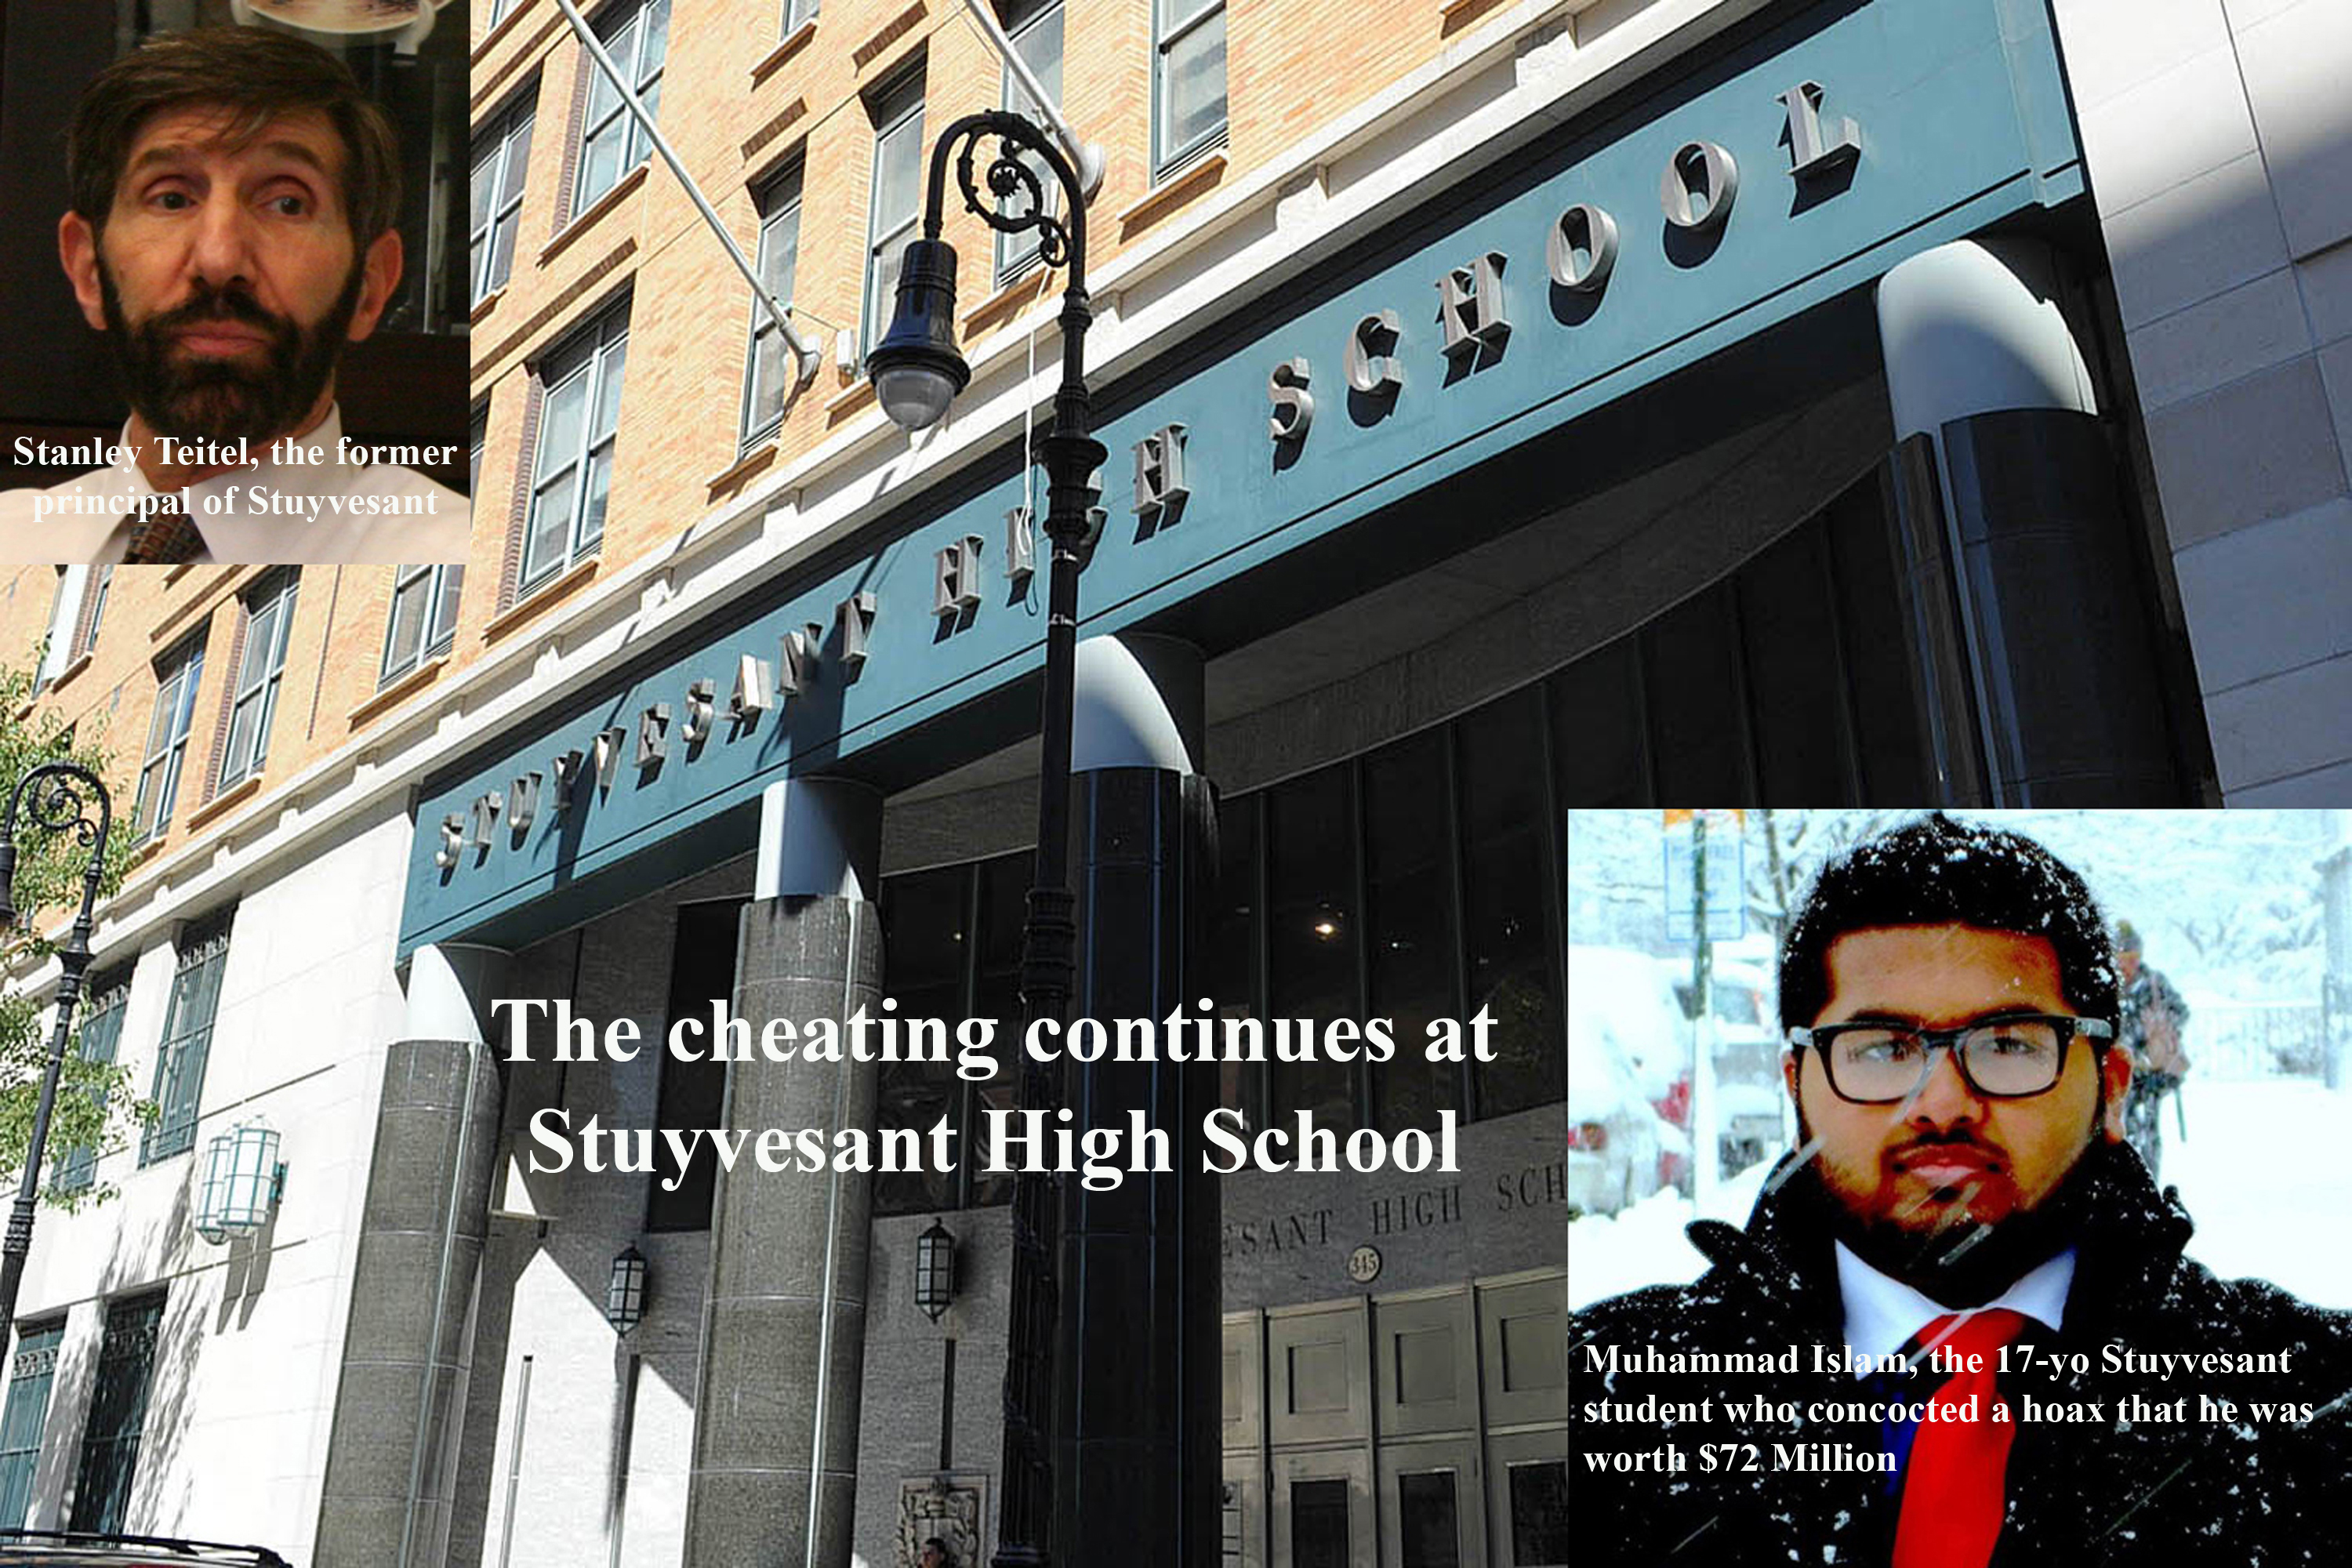 The cheating continues at Stuyvessant